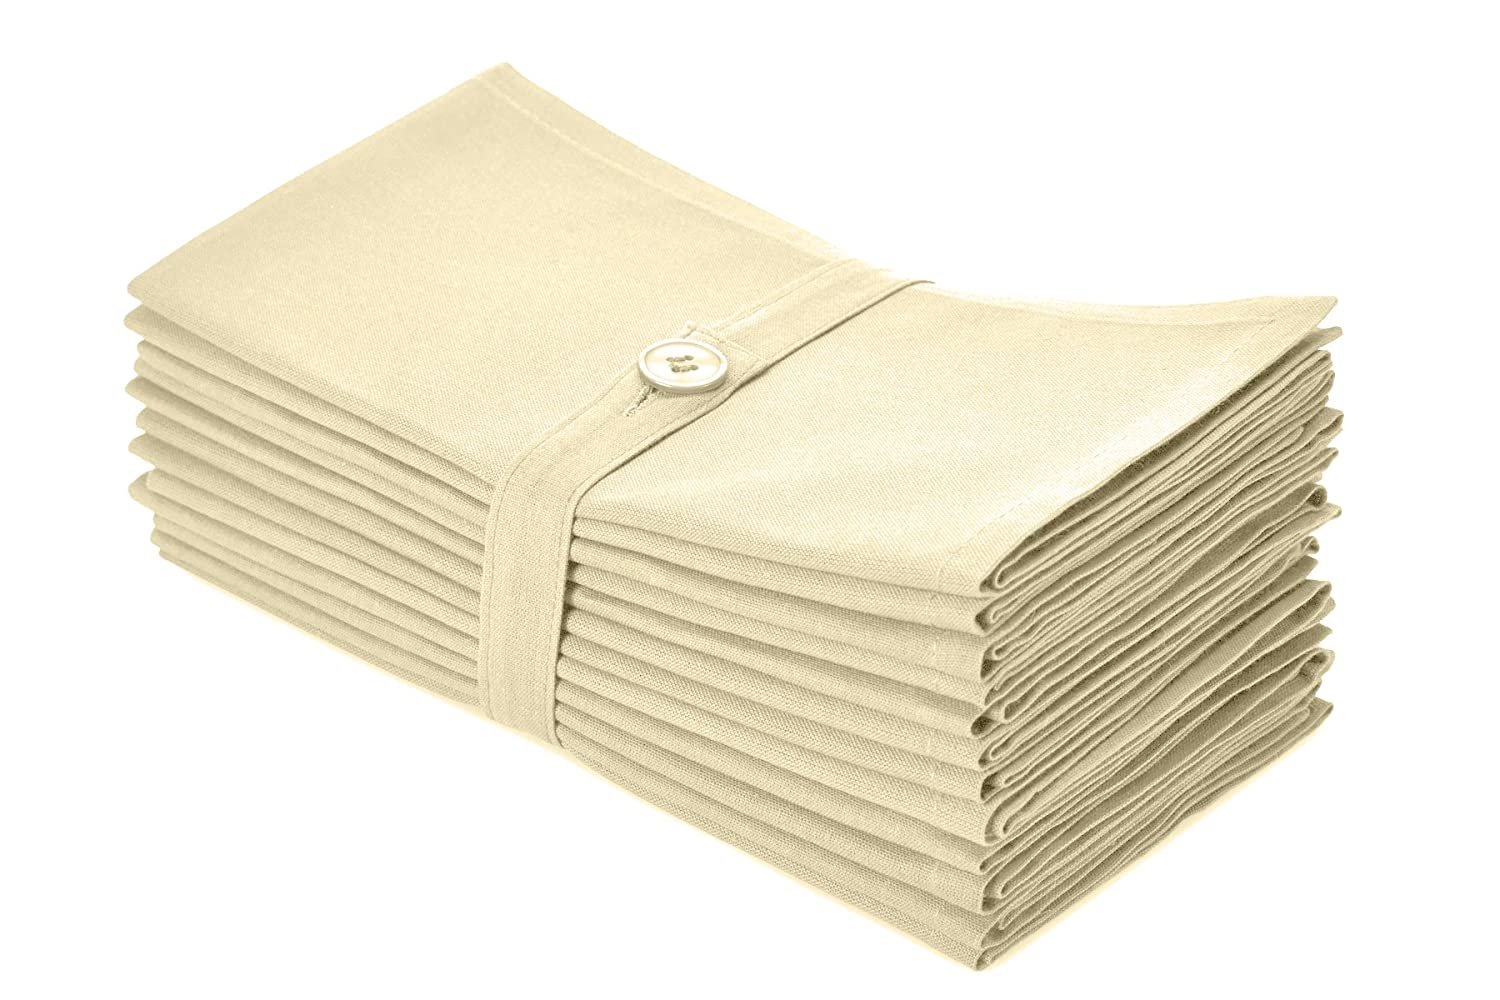 (Ivory) - Cotton Craft Napkins - 12 Pack Dinner Napkins - Ivory - 100% Cotton - Set contains 1 Dozen Ivory Napkins - Tailored with mitered corners and a generous hem - Napkins measure 50cm by 50cm - Our Napkins are 38% larger than standard size napkins ..  アイボリー B00IGB3P4S